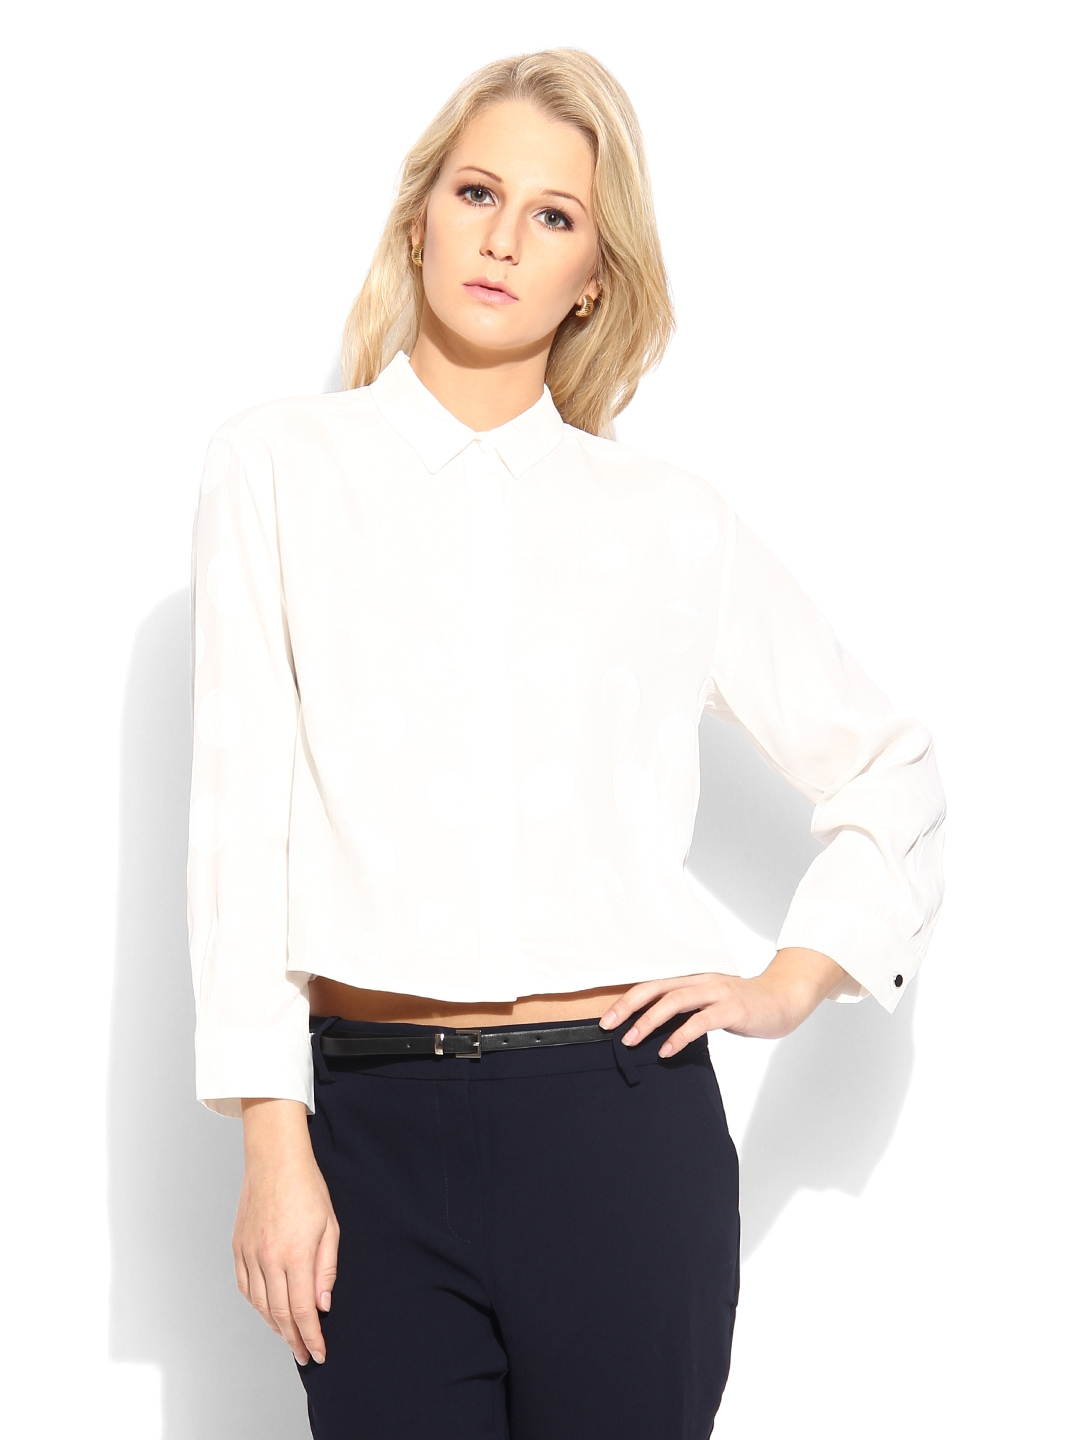 Latest trends in women's fashion. Discover our models of blouses and shirts: party, silk or casual style. FREE DELIVERY FROM $49 Discover our models of blouses and shirts: party, silk or casual style. FREE DELIVERY FROM $ FREE DELIVERY FROM $ s s. Search. Register | Discover the special promotions in Mango Outlet fashion.